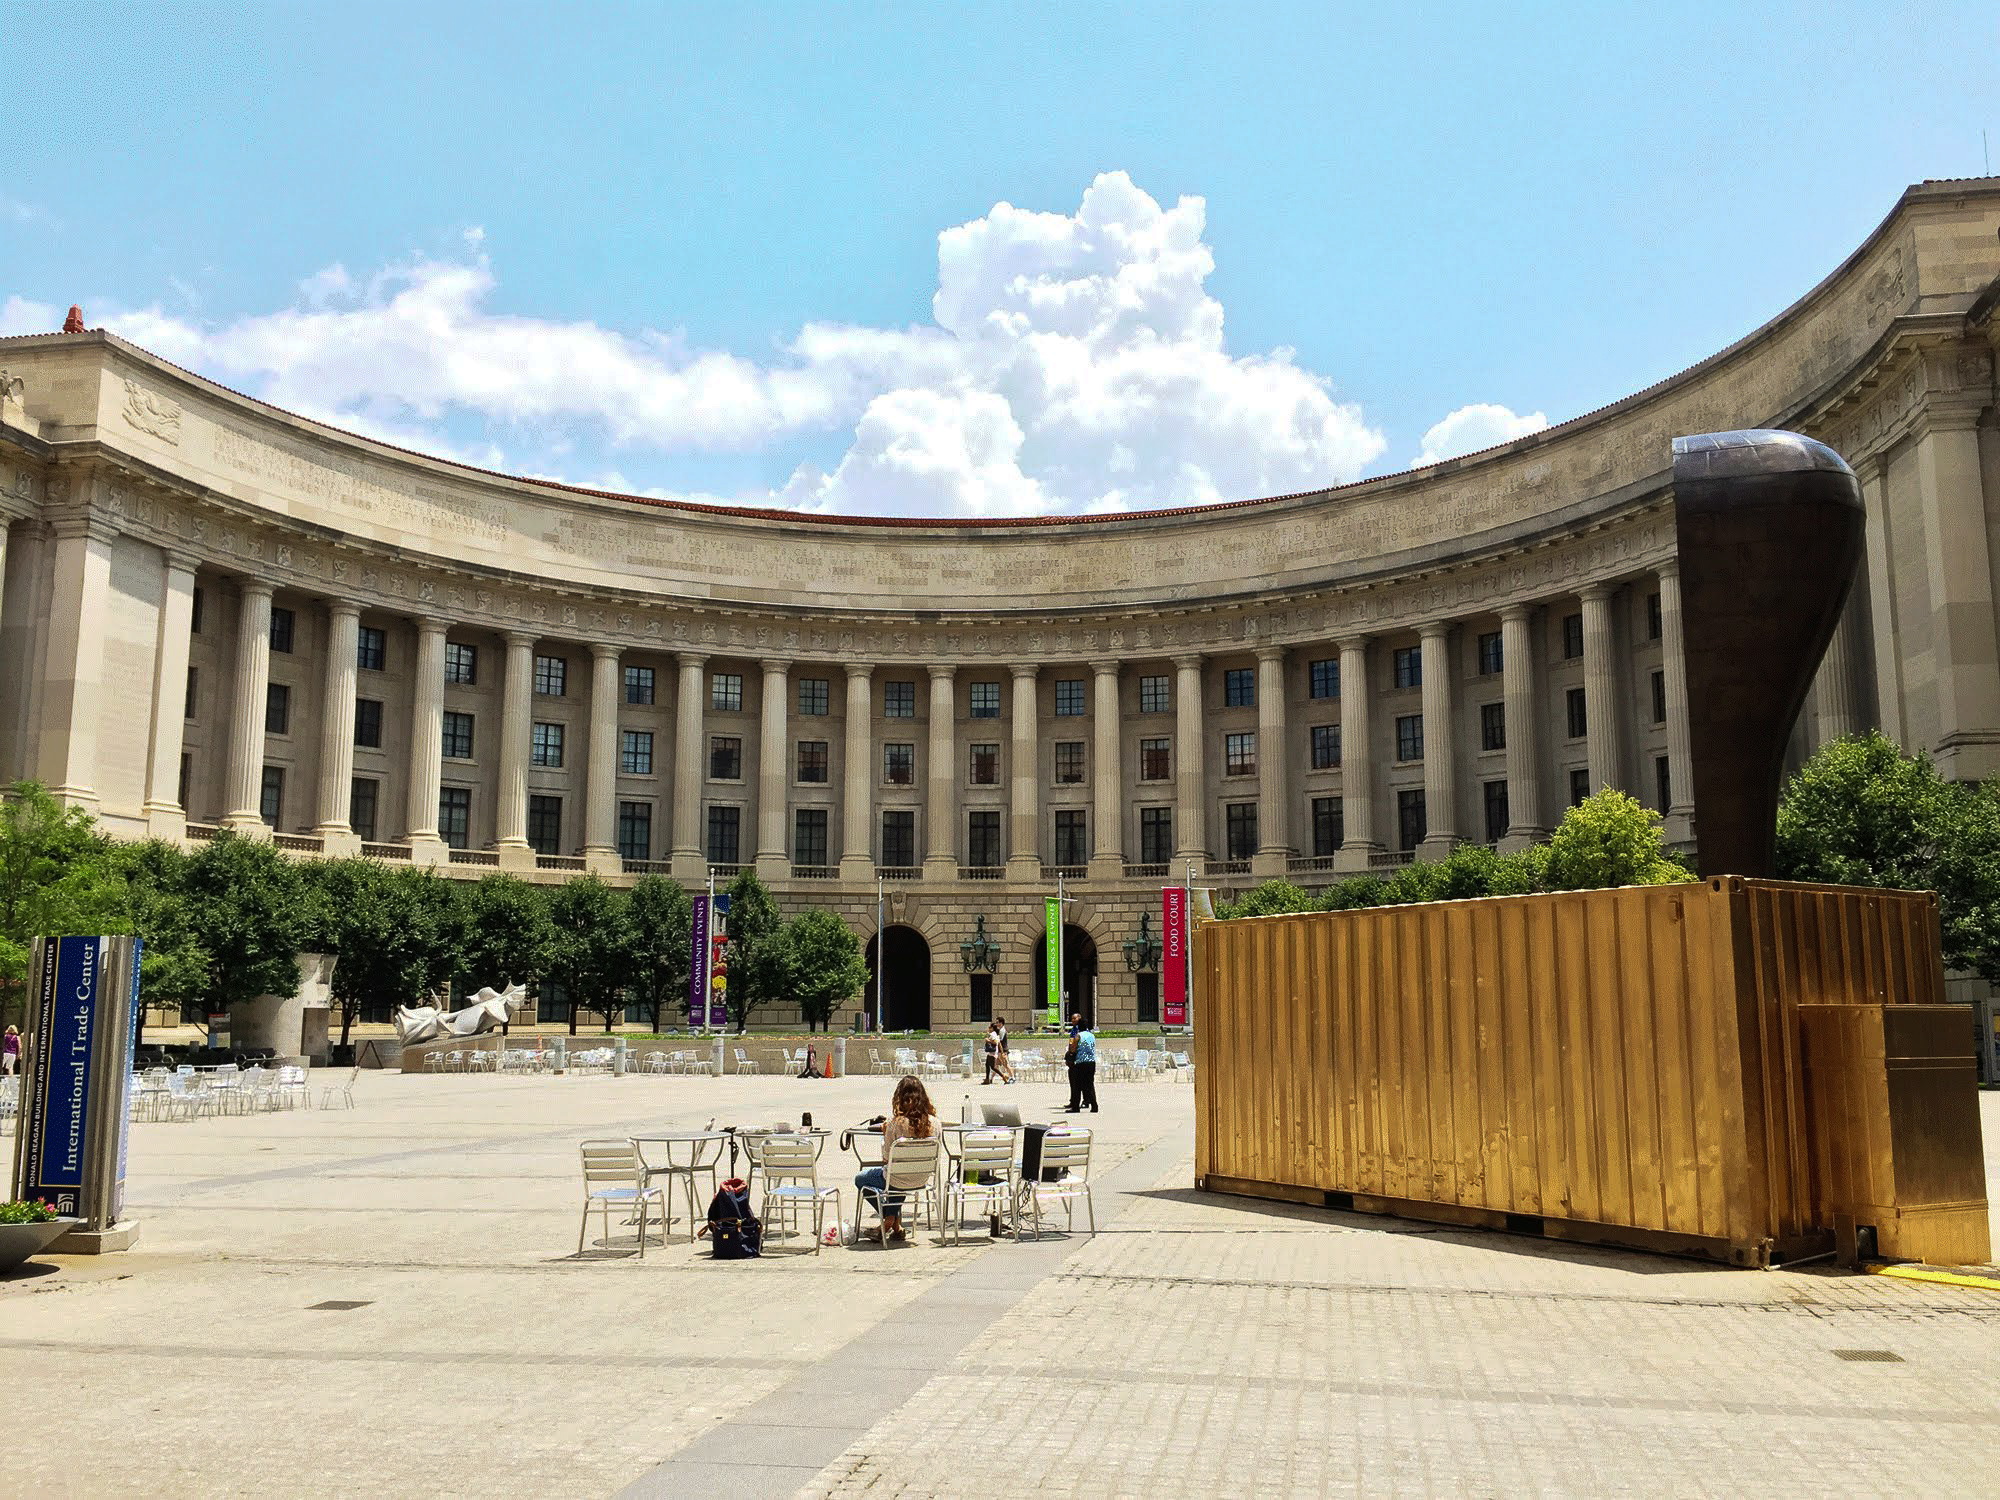 The Shared_Studios Portal in the Woodrow Wilson Plaza in Washington DC, USA.  ©Shared_Studios |  Download JPEG (1.2mb)